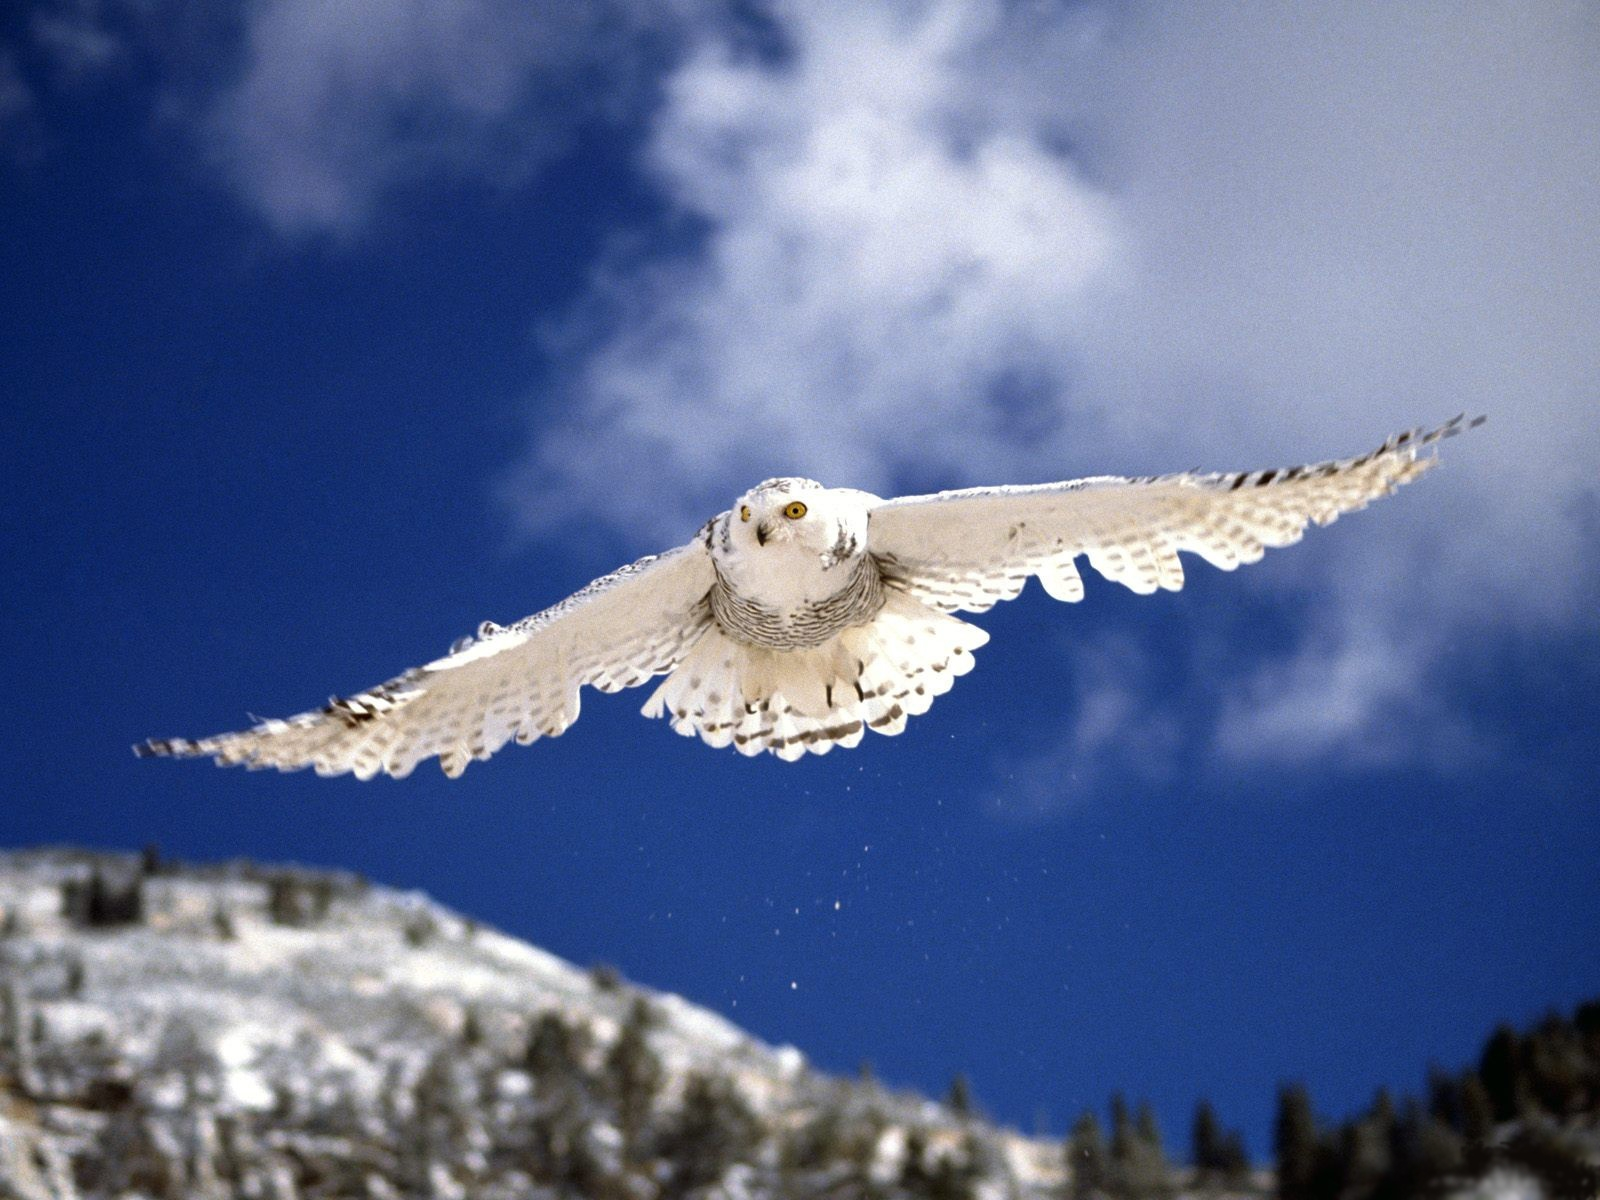 animals in flight wallpaper desk - photo #12